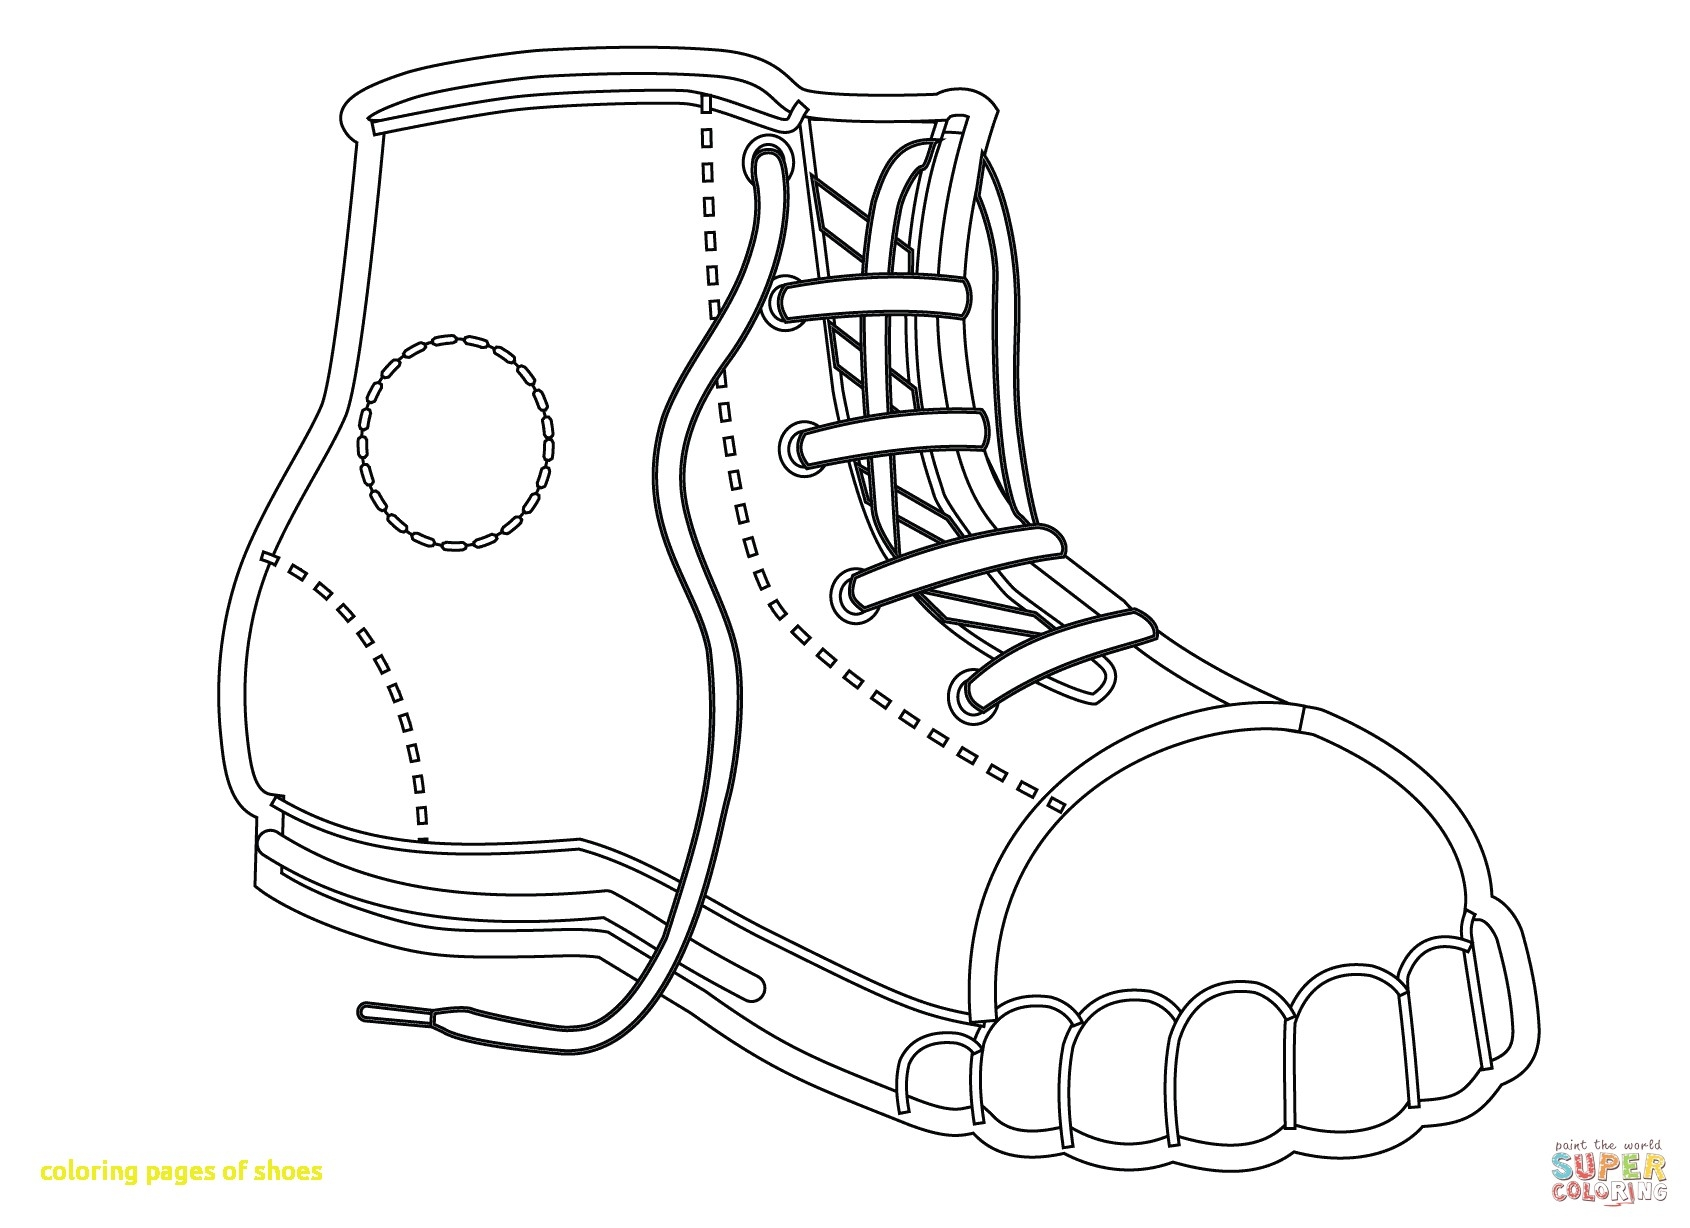 Jordan Coloring Pages At Getdrawings Com Free For Personal Use